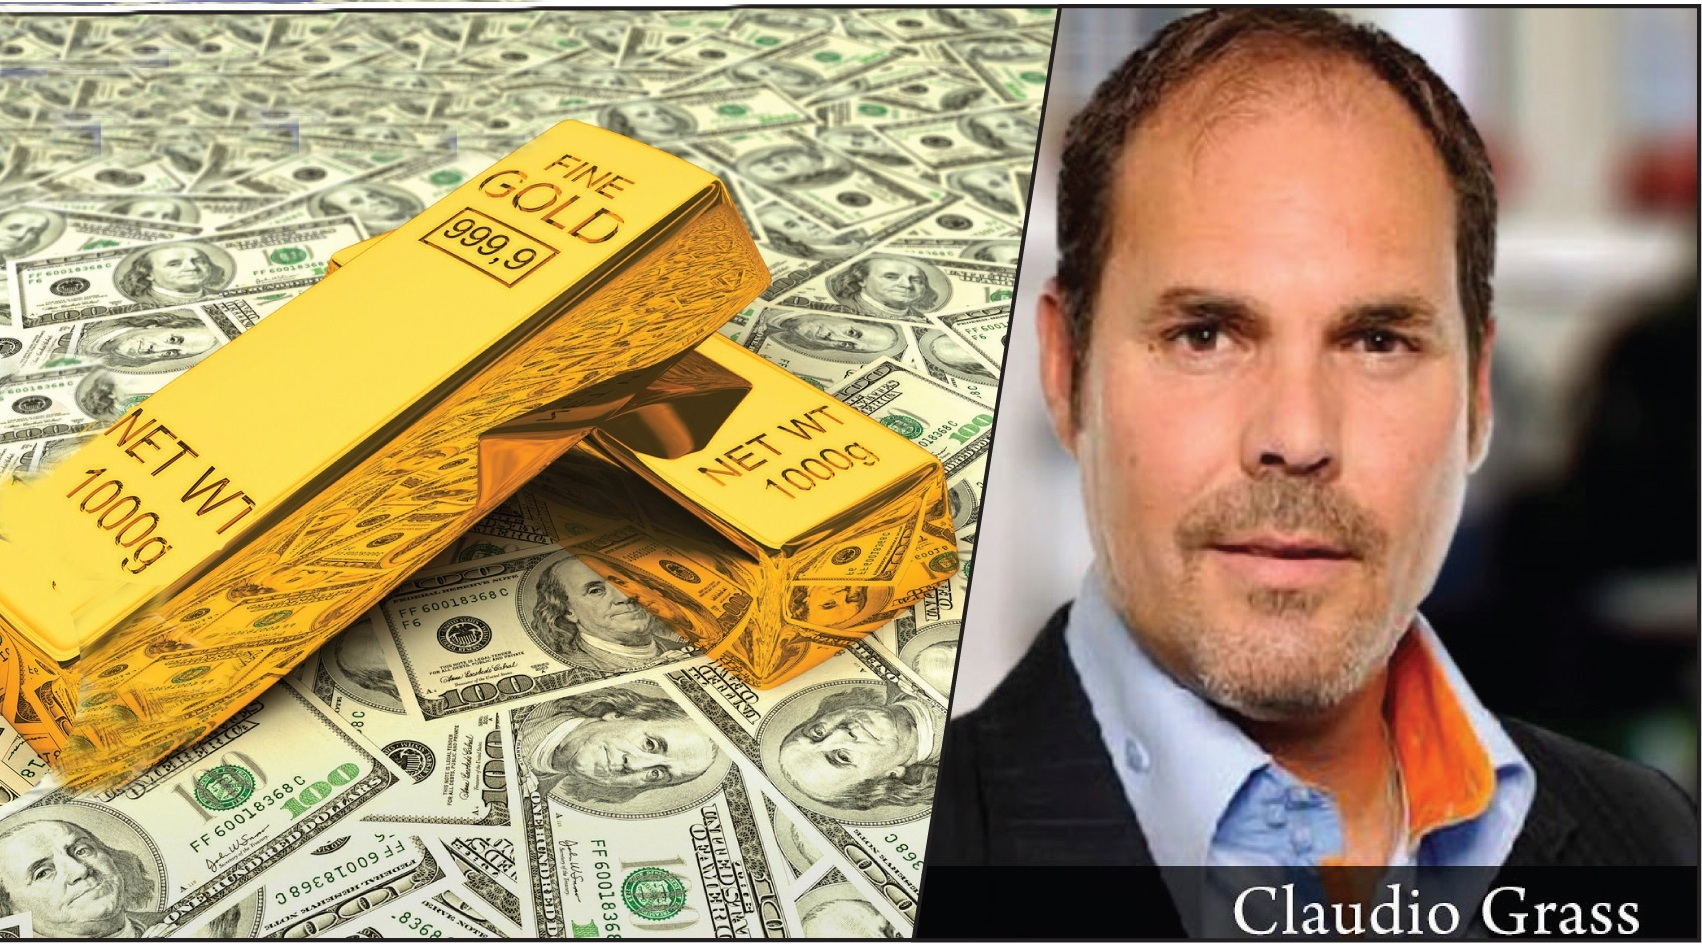 If US dollar crashes in the currency war, investment in gold will be the only saviour, claims renowned expert Claudio Grass